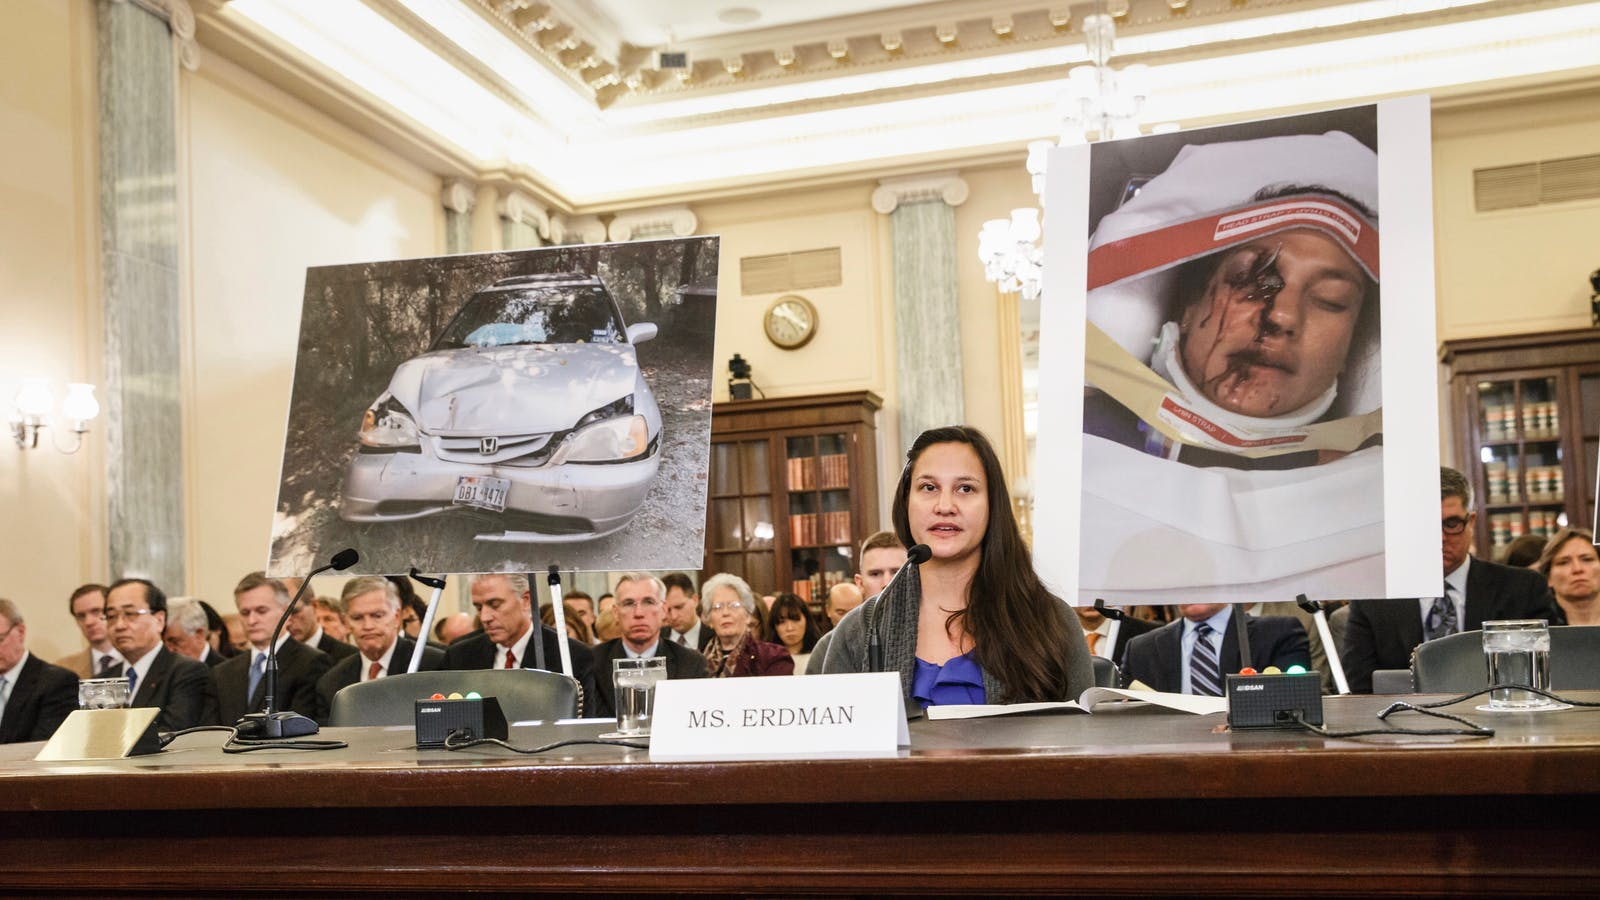 Stephanie Erdman, who was injured when a Takata airbag blew up, testifies before Congress in 2014. Photo by the AP.